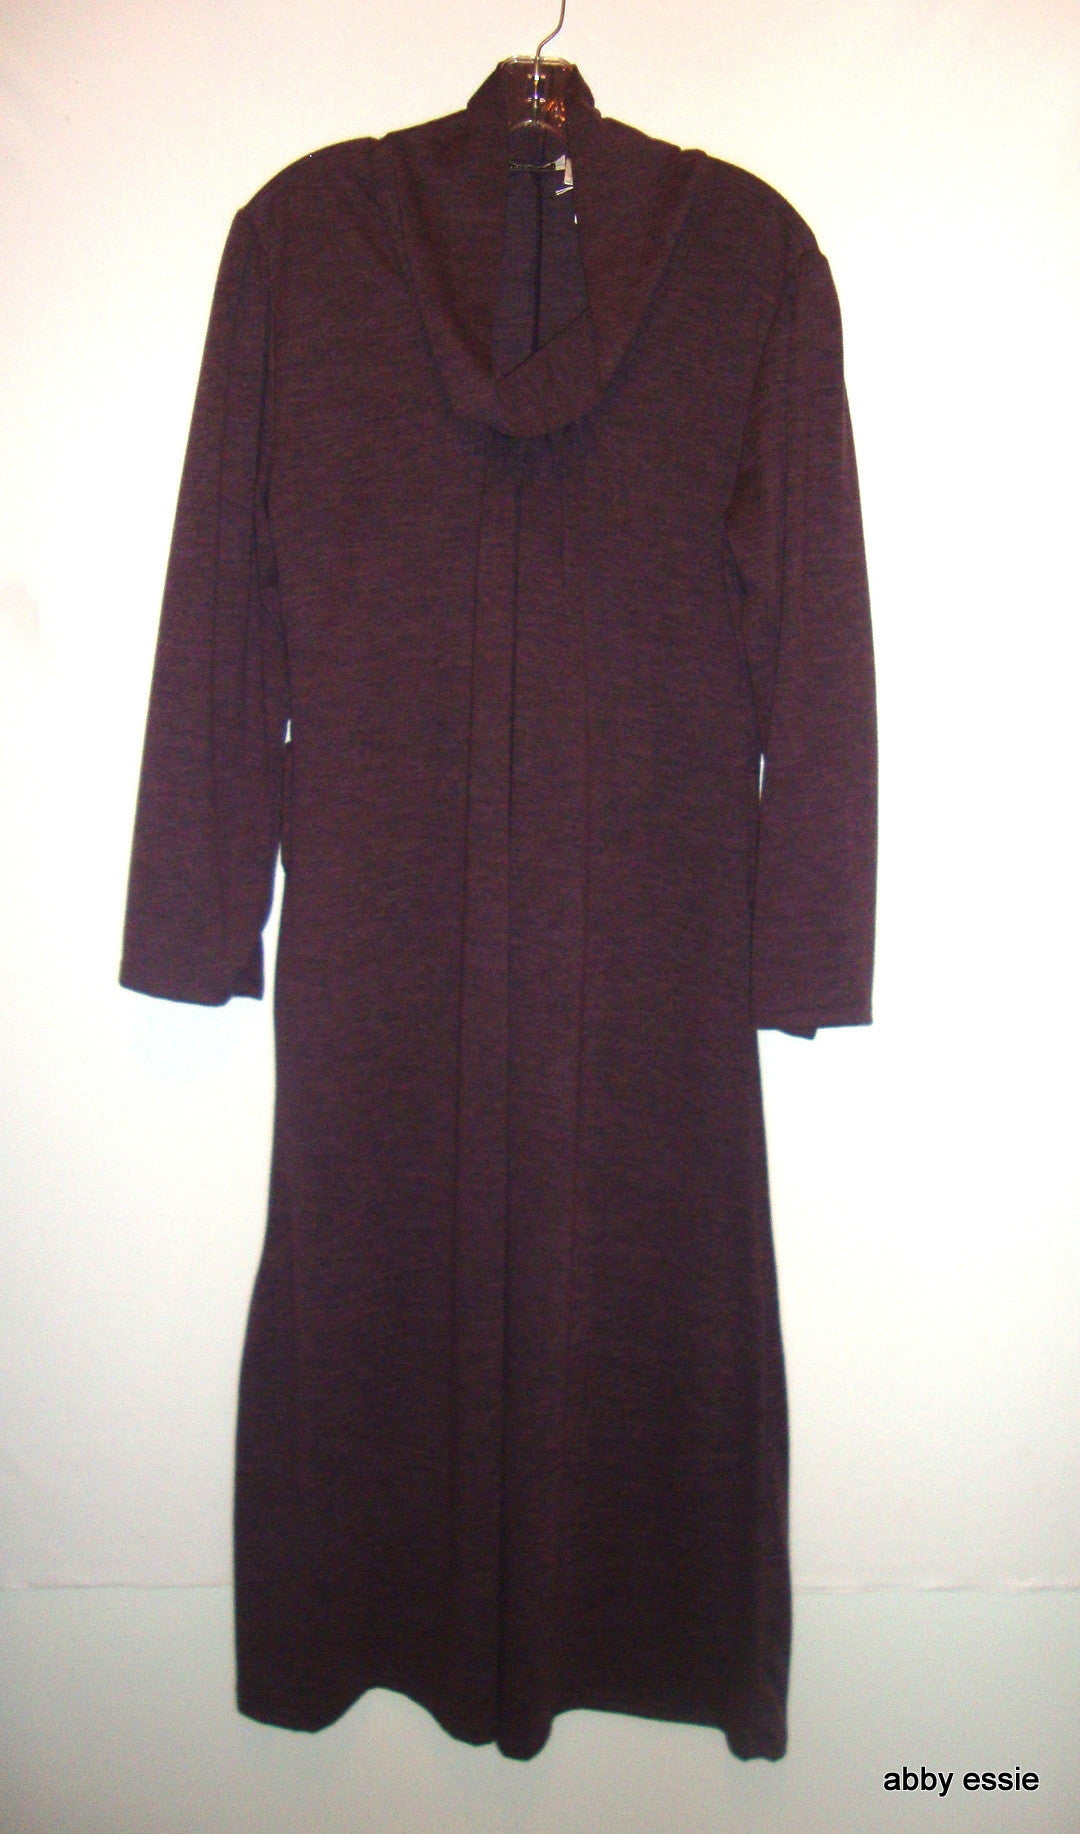 NICE PURPLE LONG TURTLENECK EGGPLANT KNIT SWEATER LIKE DRESS SZ PLUS 14 LARGE